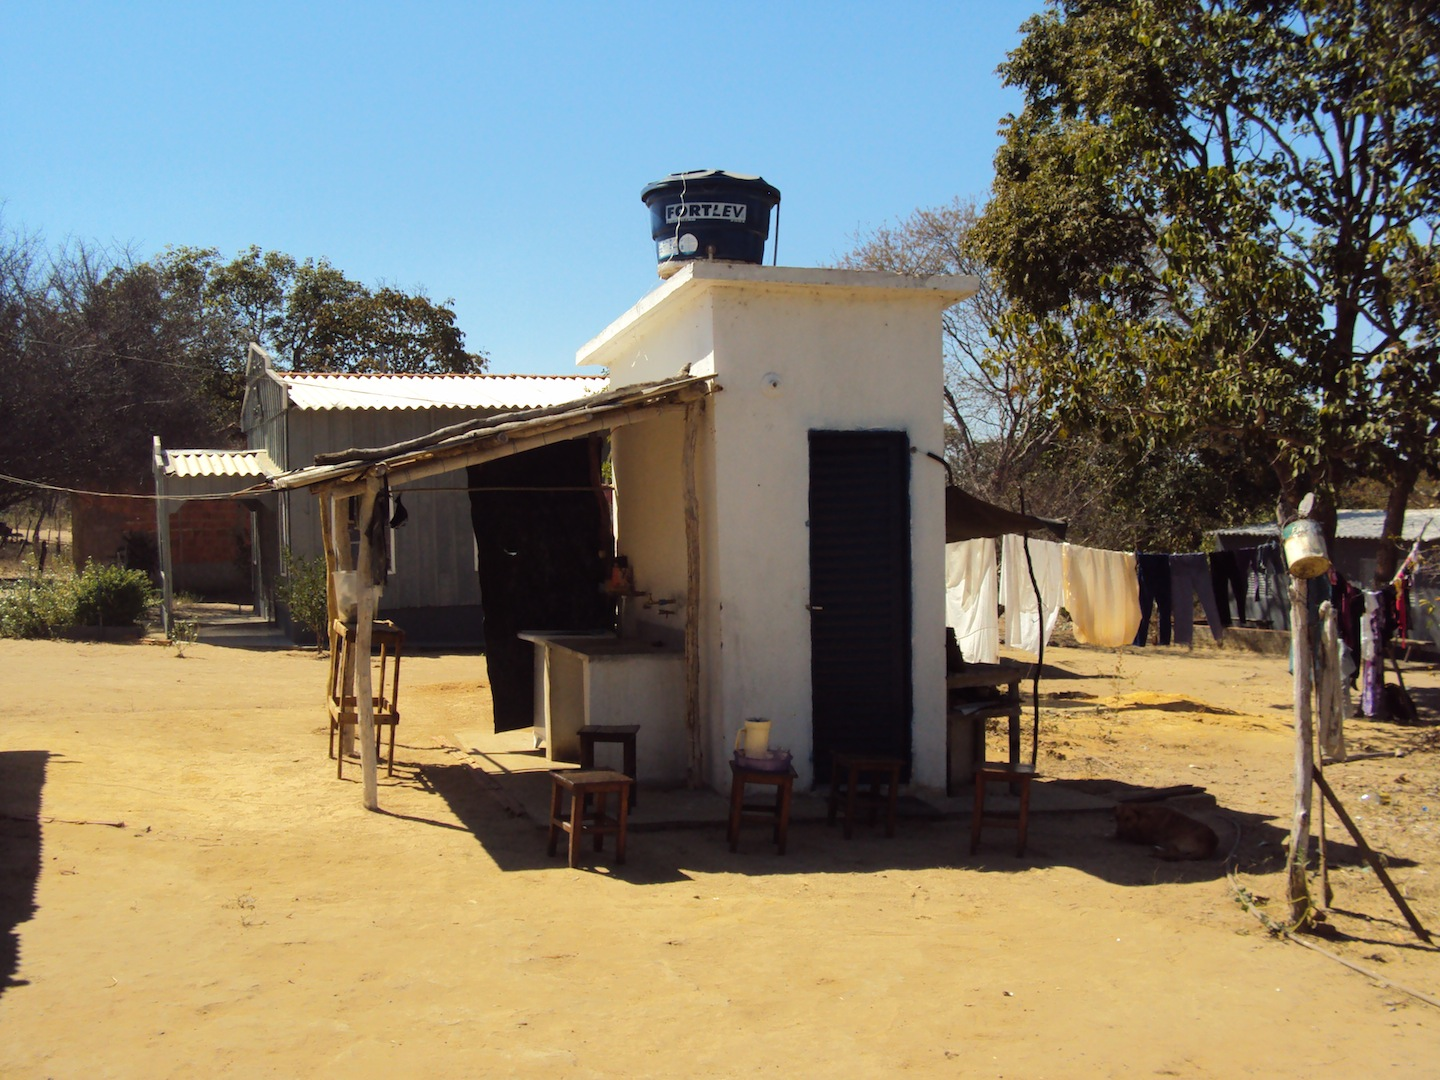 Water tank built by Brazil's National Health Foundation, Lagedo community, São Francisco, MG